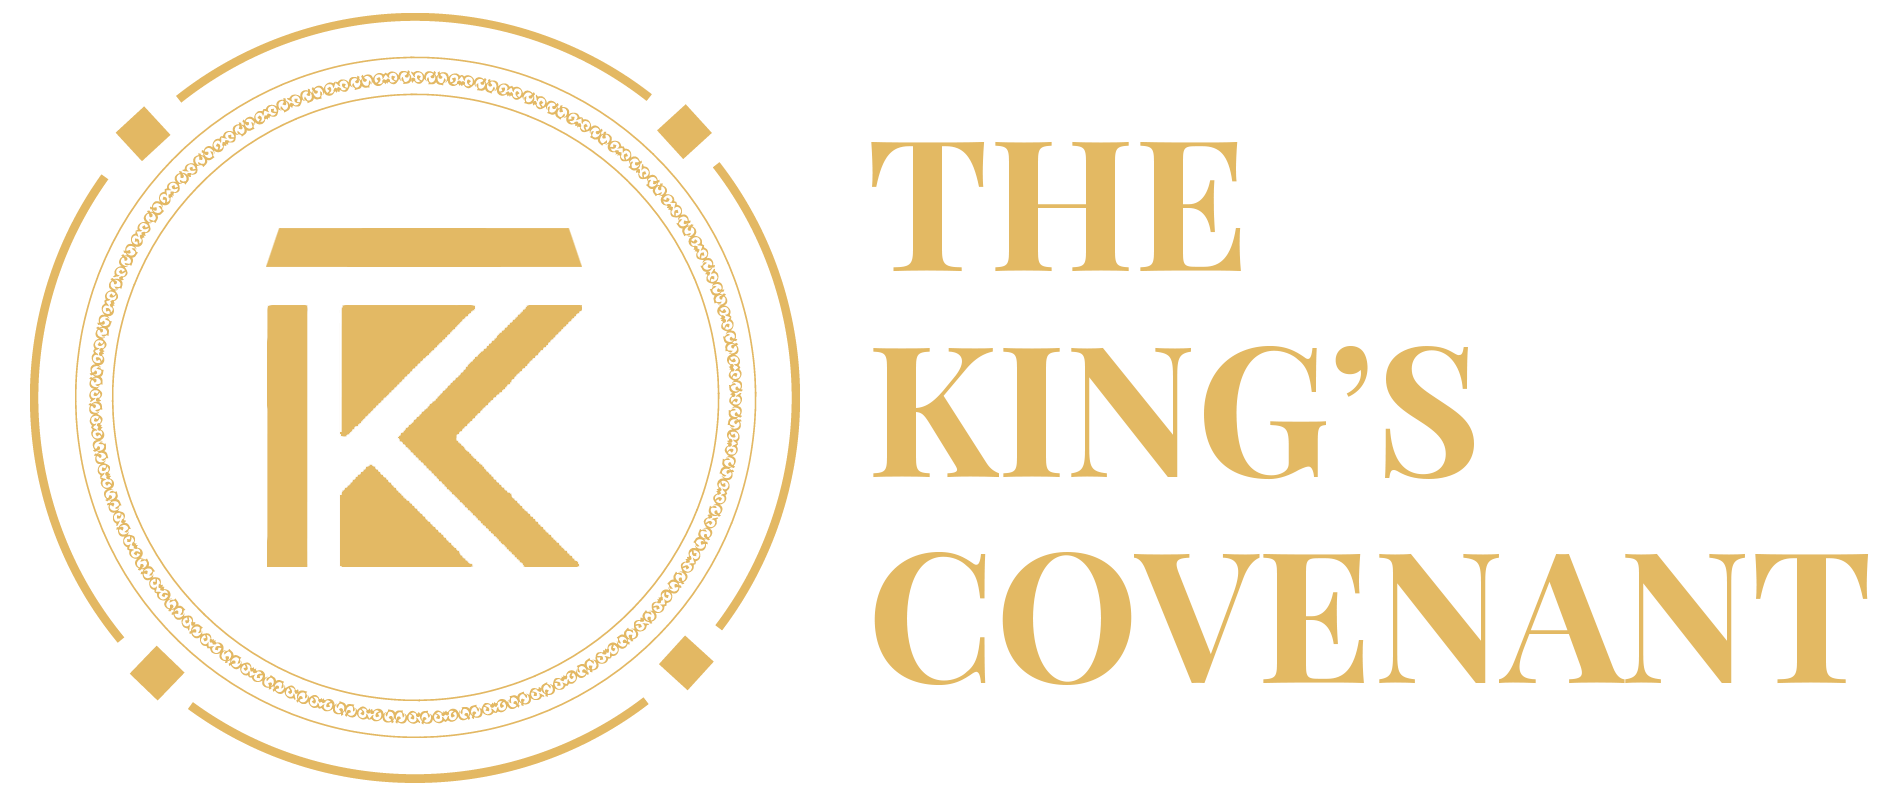 The King's Covenant